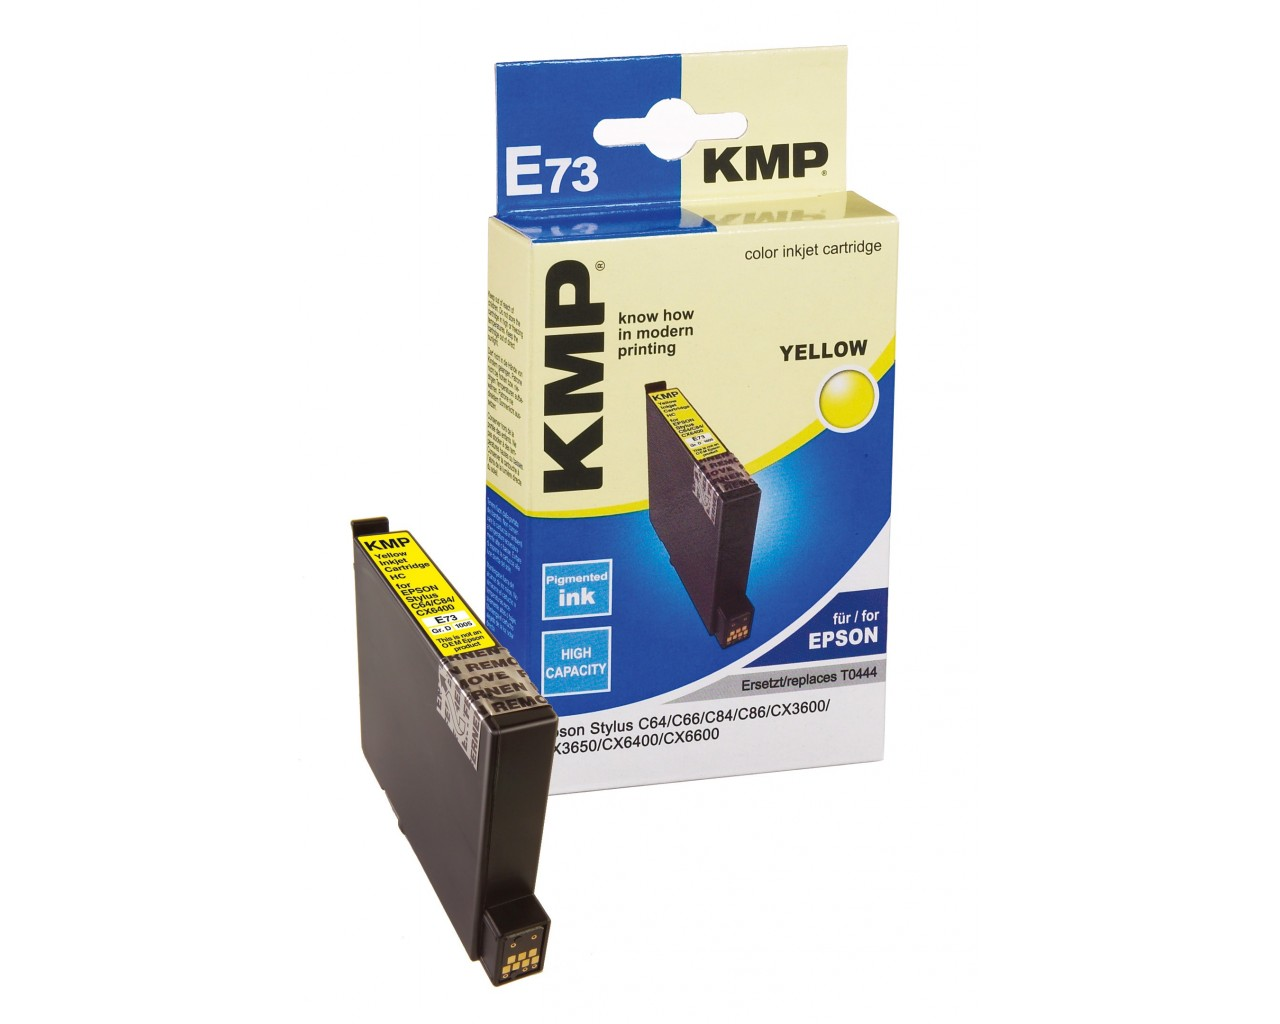 KMP Epson E73 ink cartridge žlutá 13ml